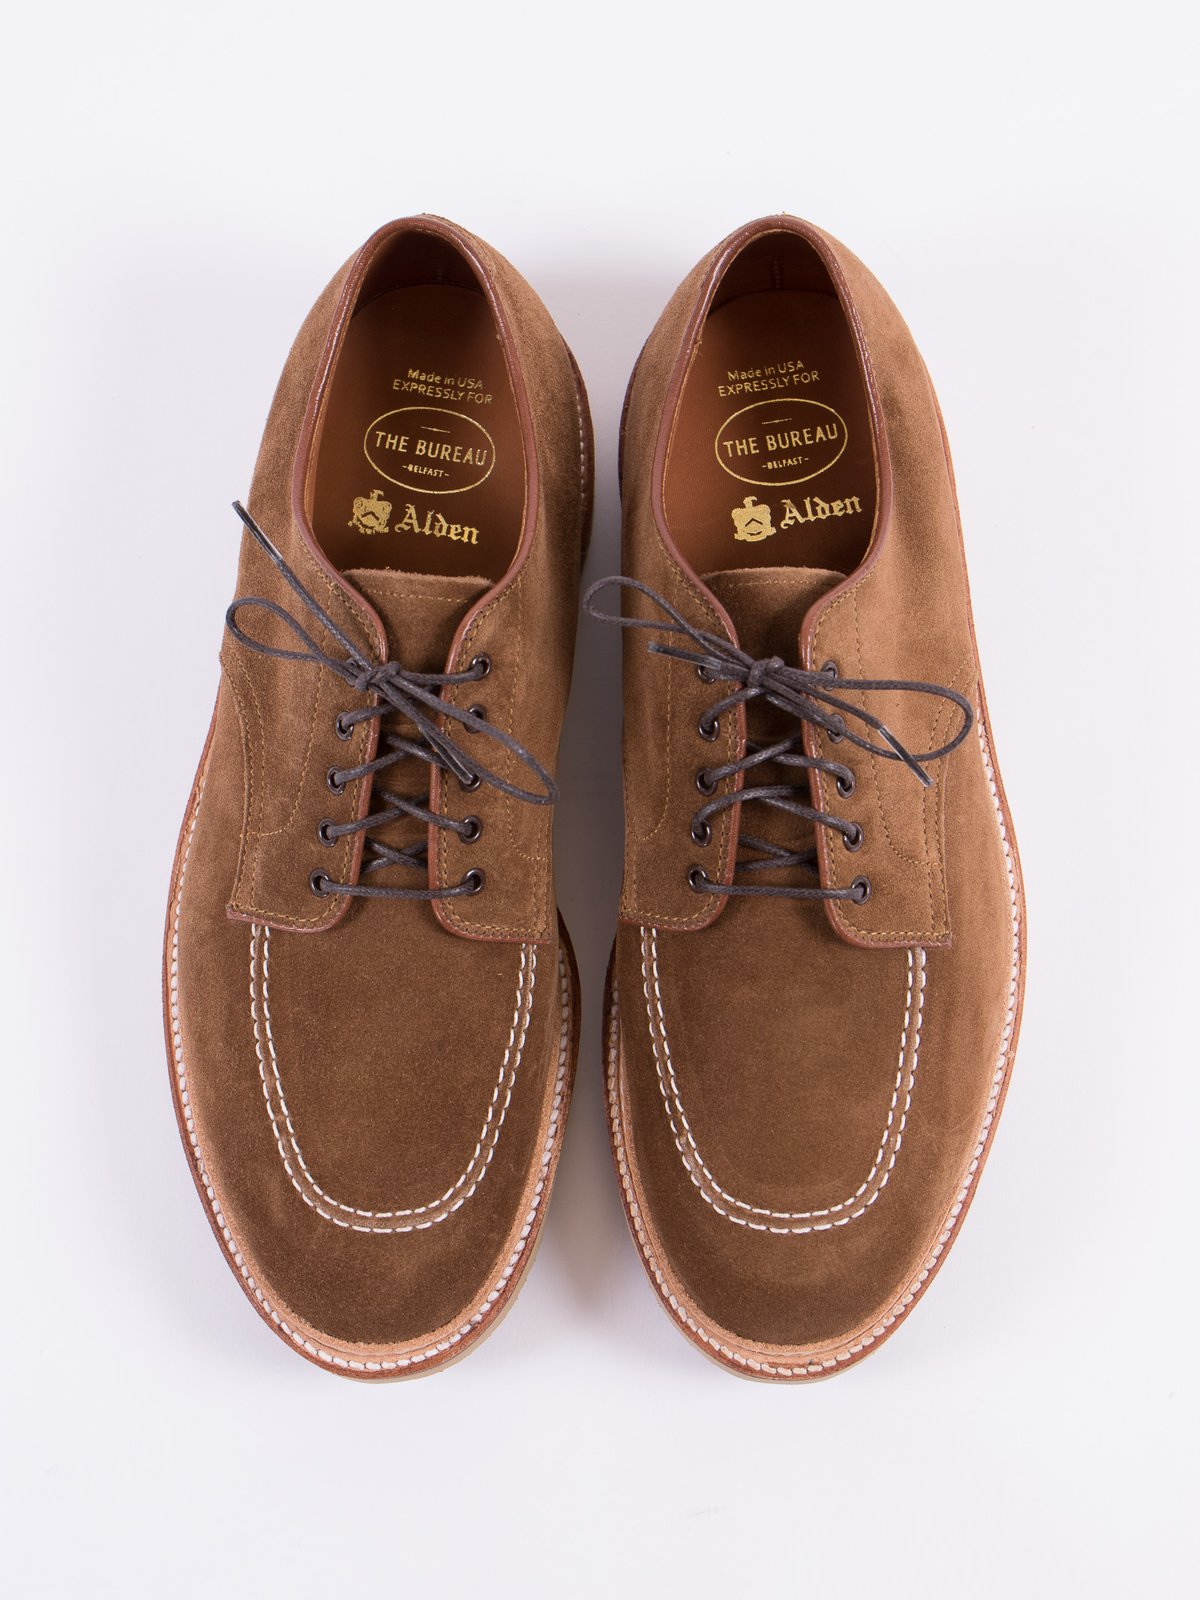 Snuff Suede Indy Work Shoe - Image 6